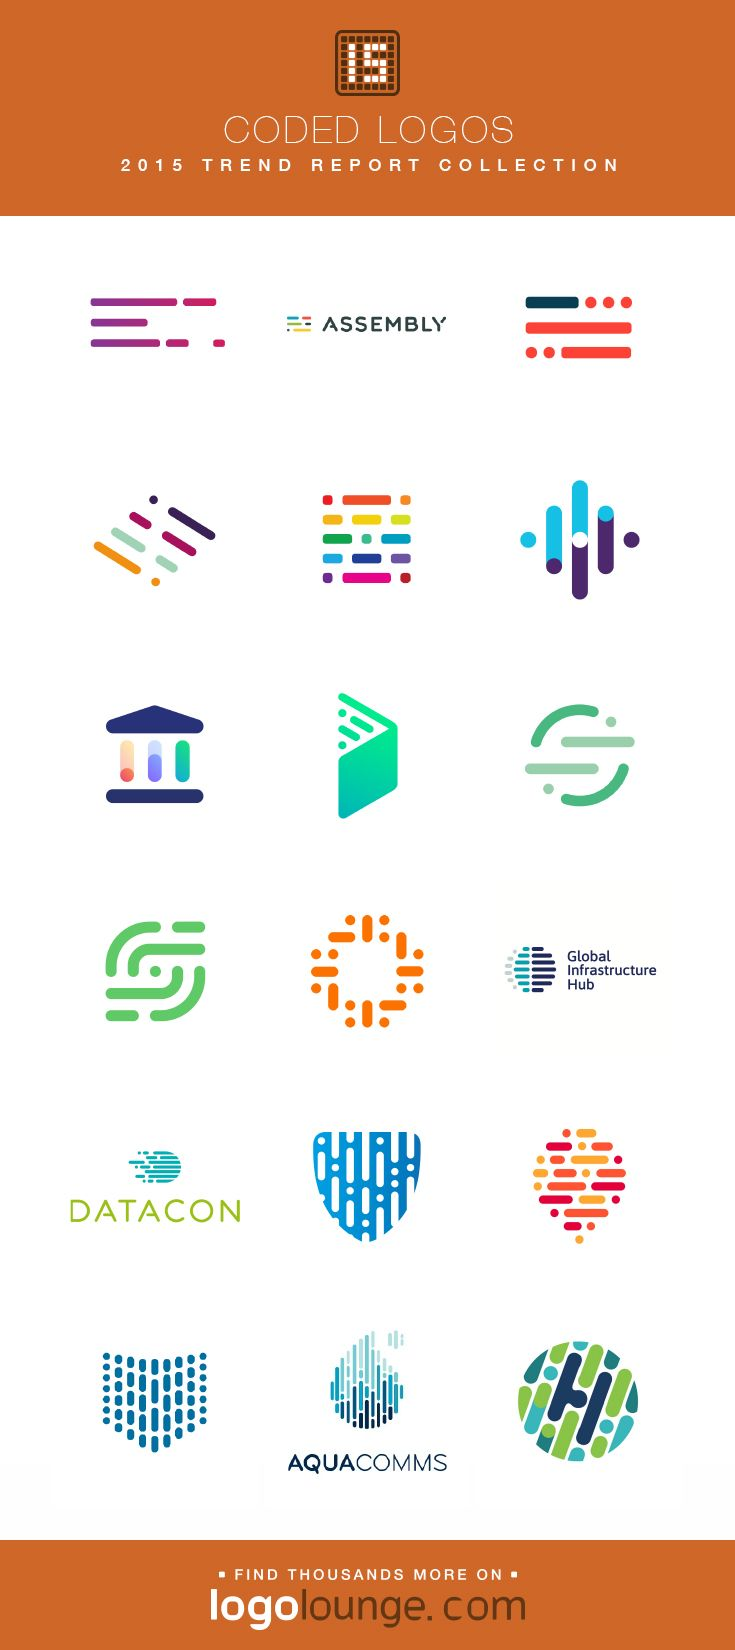 2015 LogoLounge Trend Report Collection - Coded Logos Lines